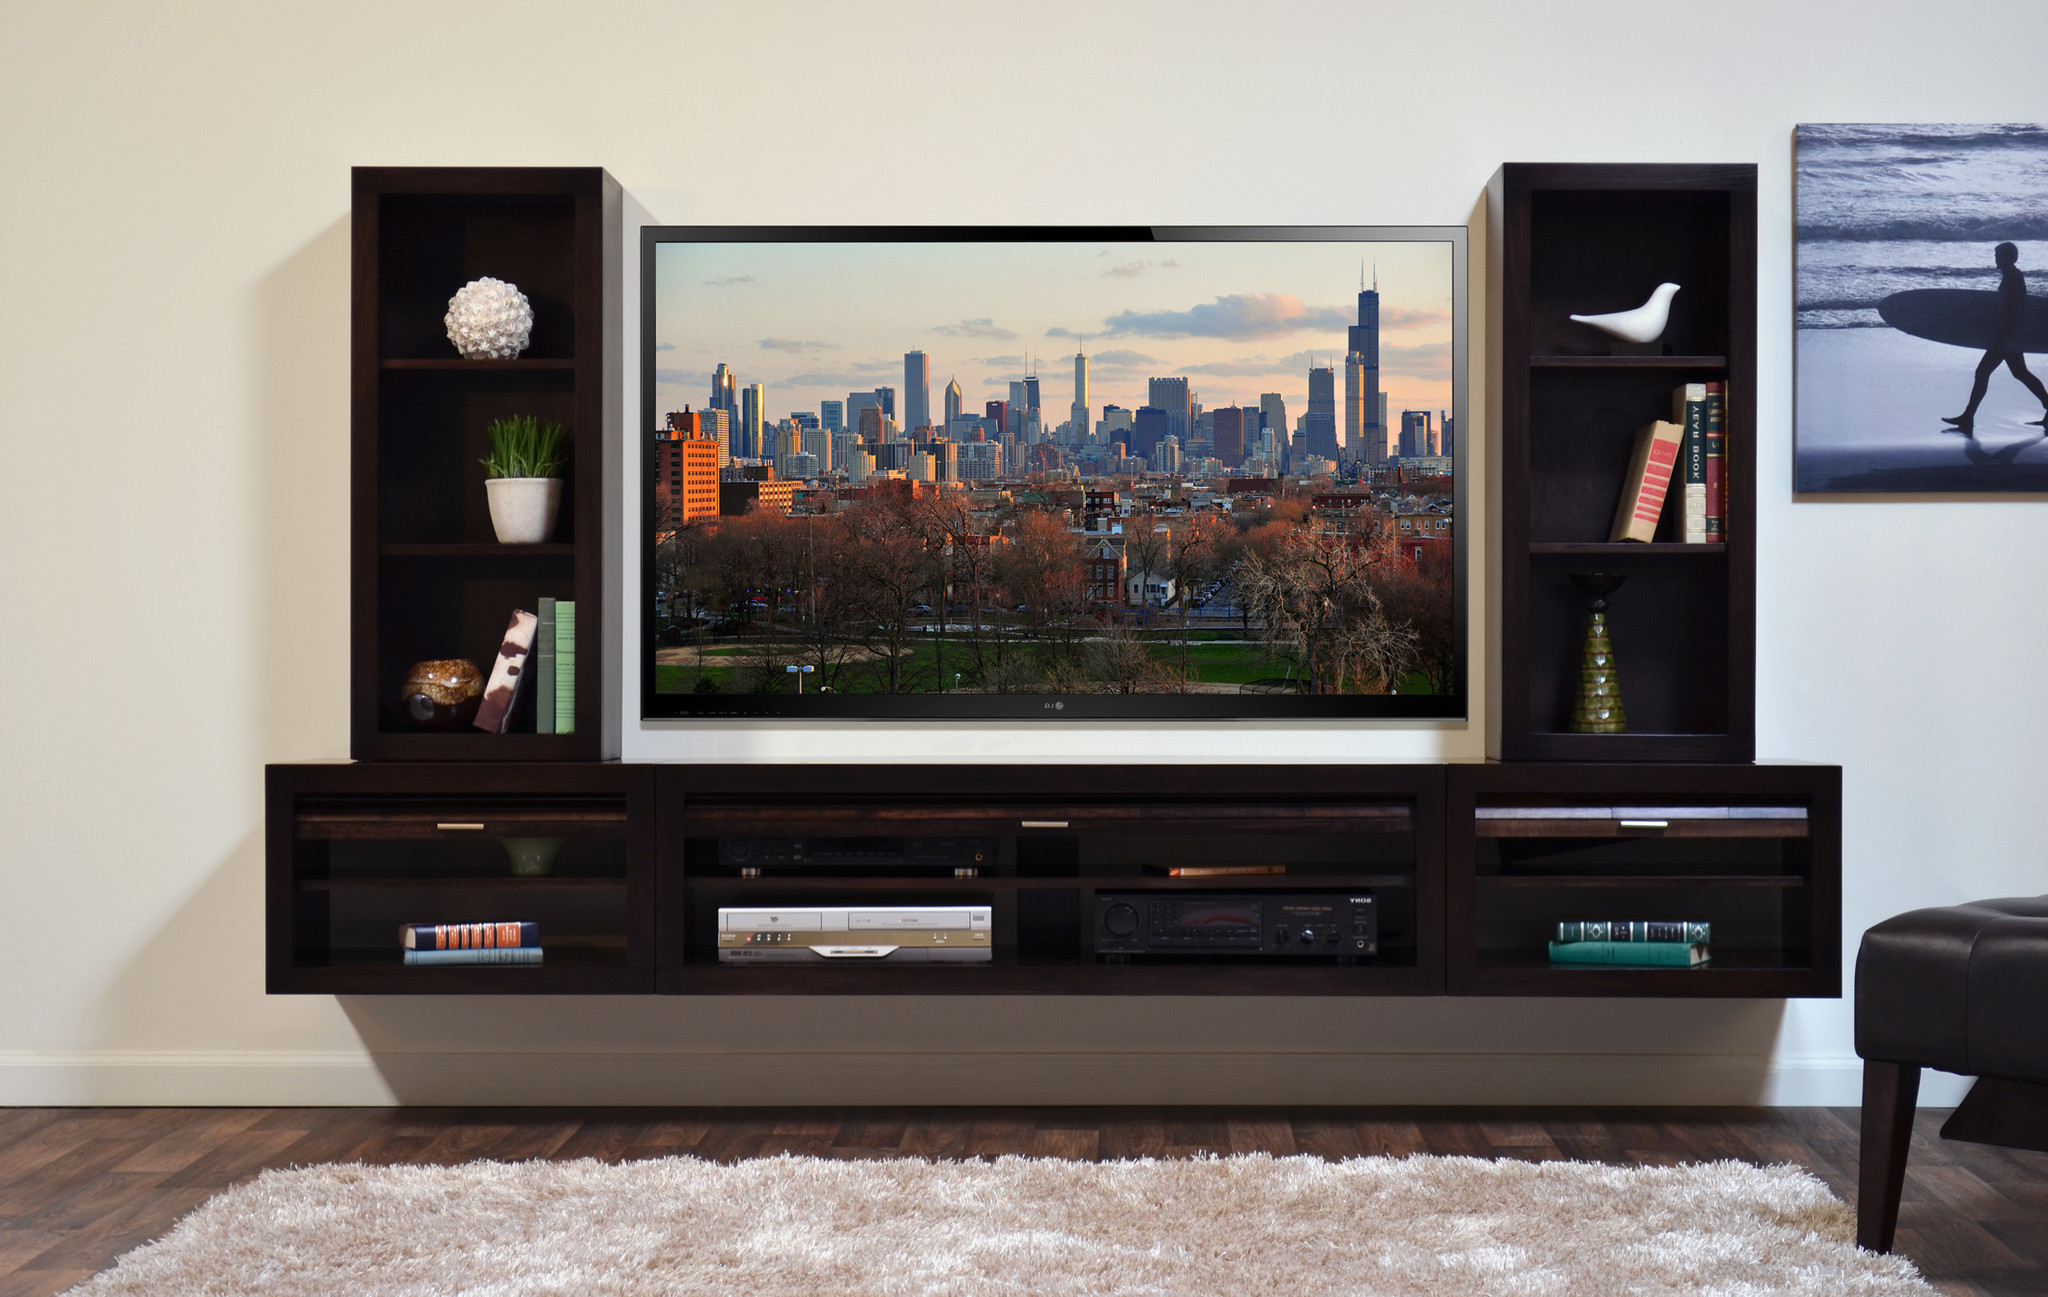 Latest Ikea Hemnes Tv Stand Discontinued White Gloss Modern Wall Units For In Tv Stand Wall Units (Gallery 20 of 20)